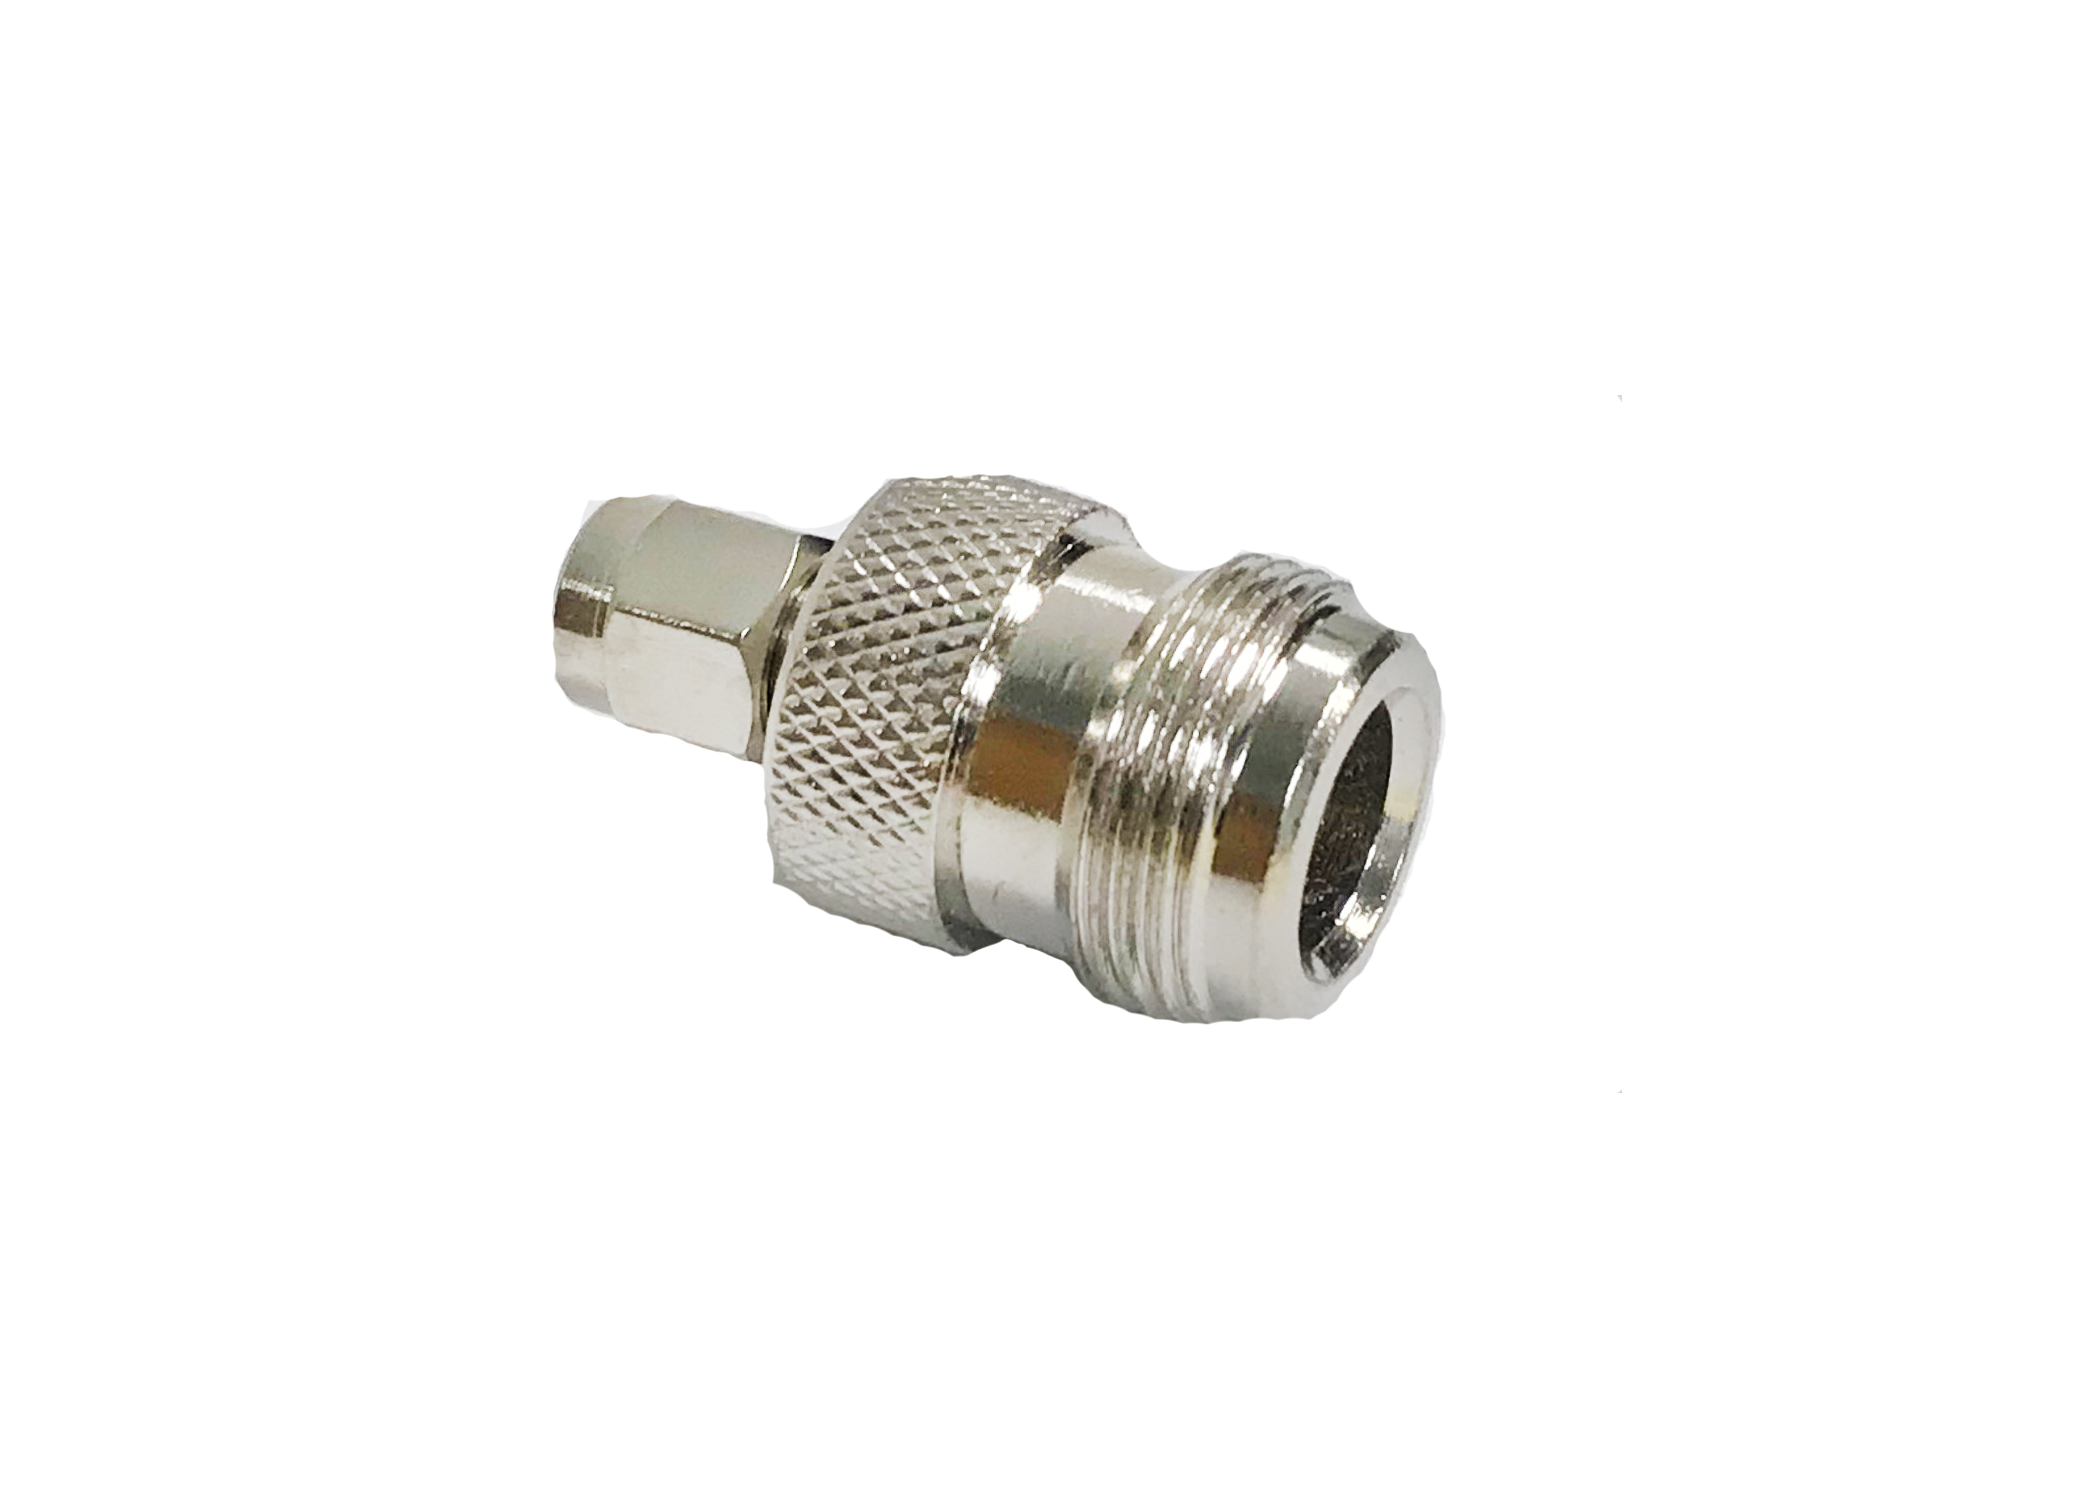 407824 - TWINPOINT N-FEMALE TO SMA MALE ADAPTOR